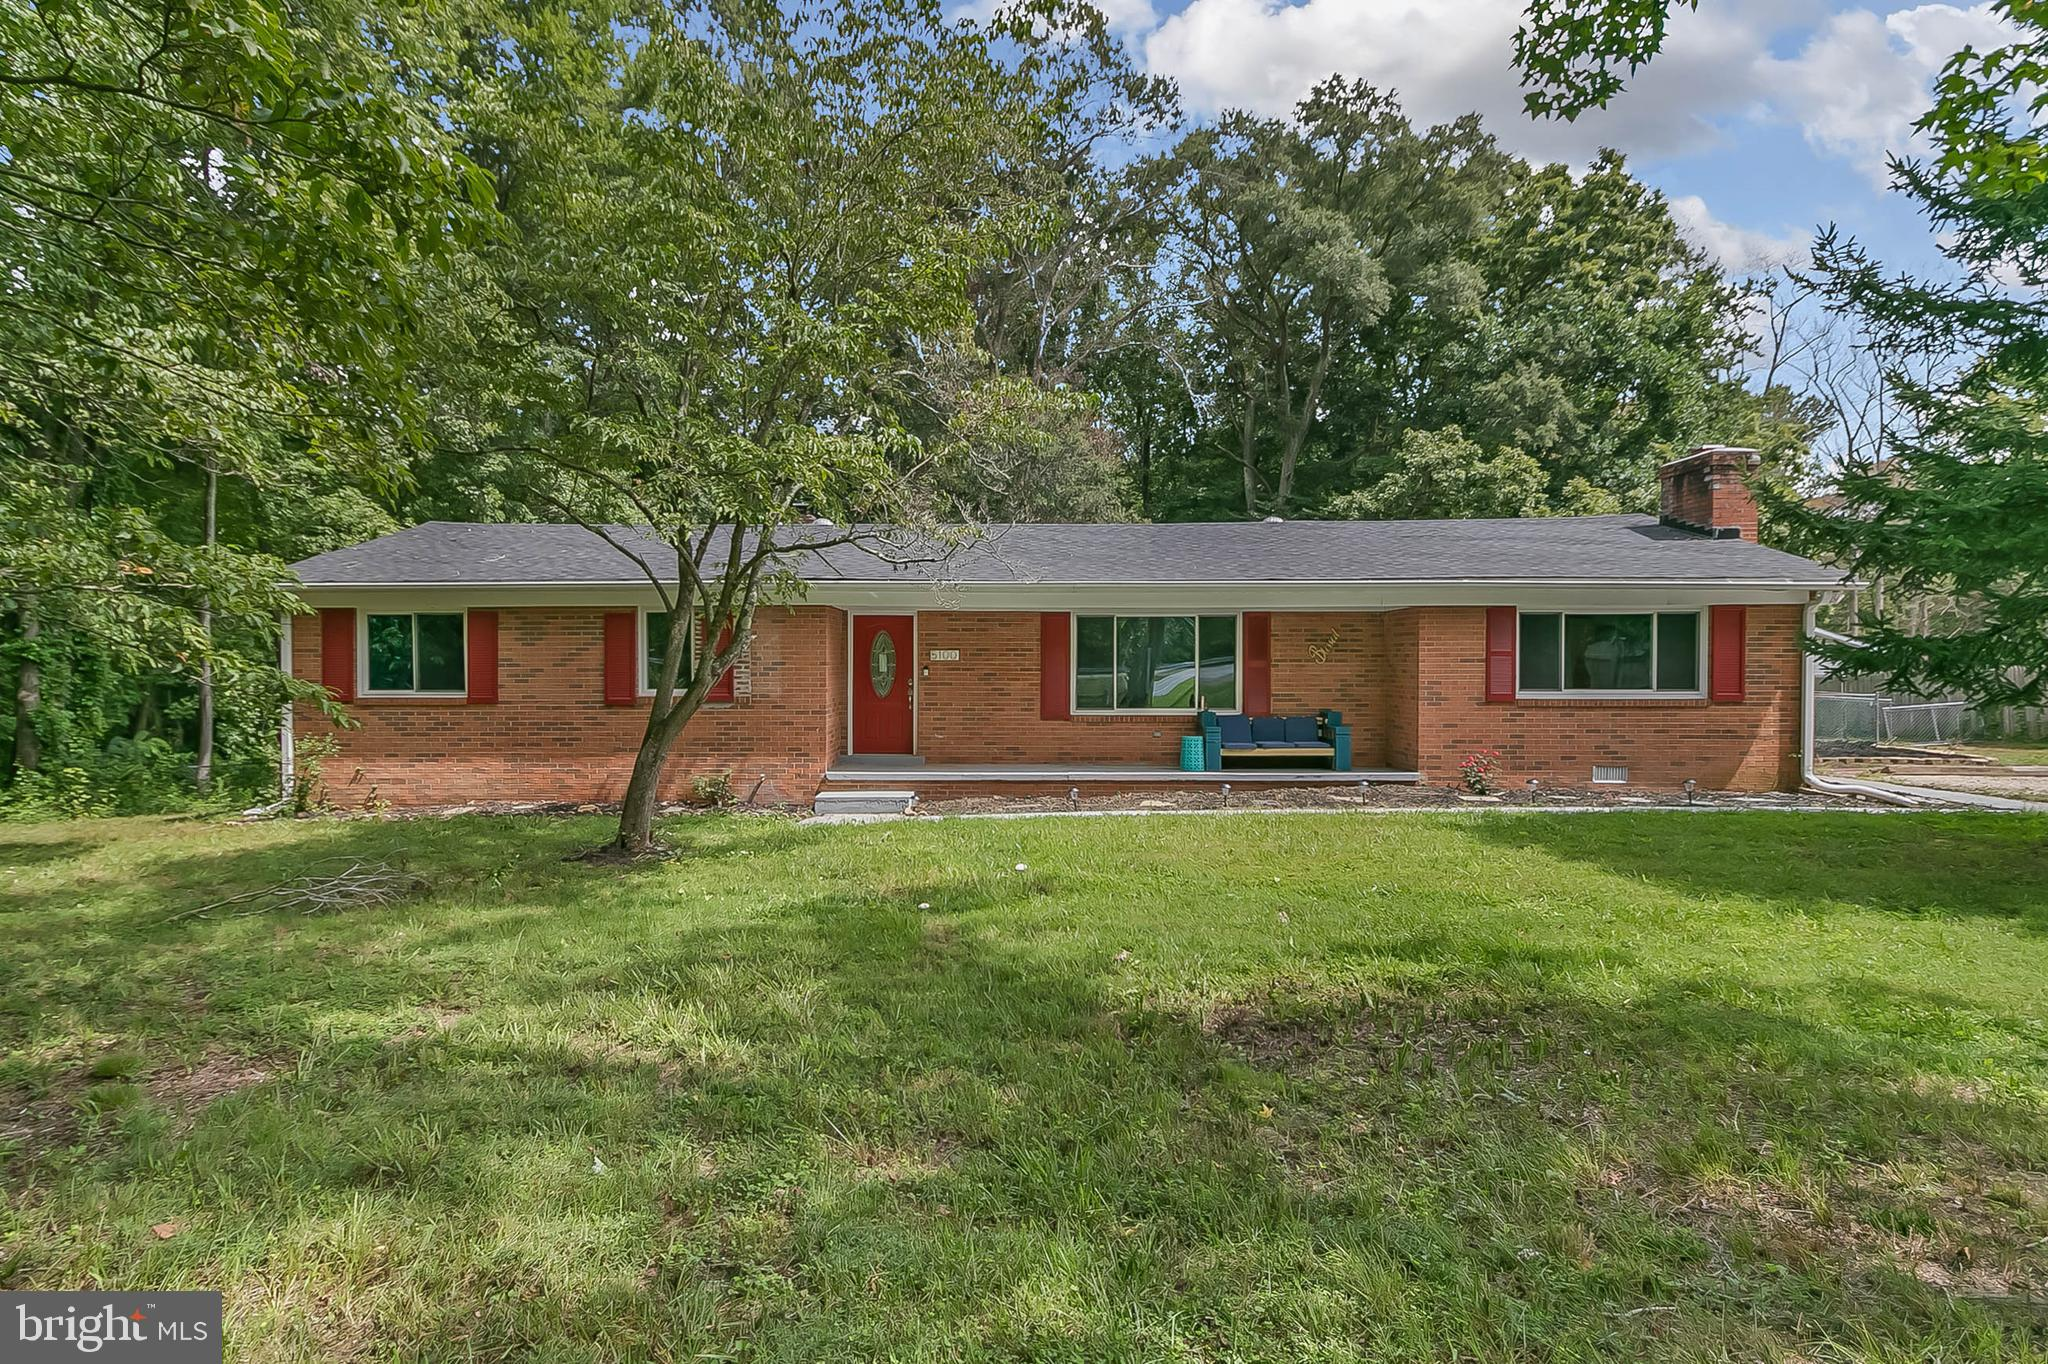 RECENTLY UPDATED BRICK RAMBLER ON LARGE LOT!! Large main level with open layout features hardwood fl